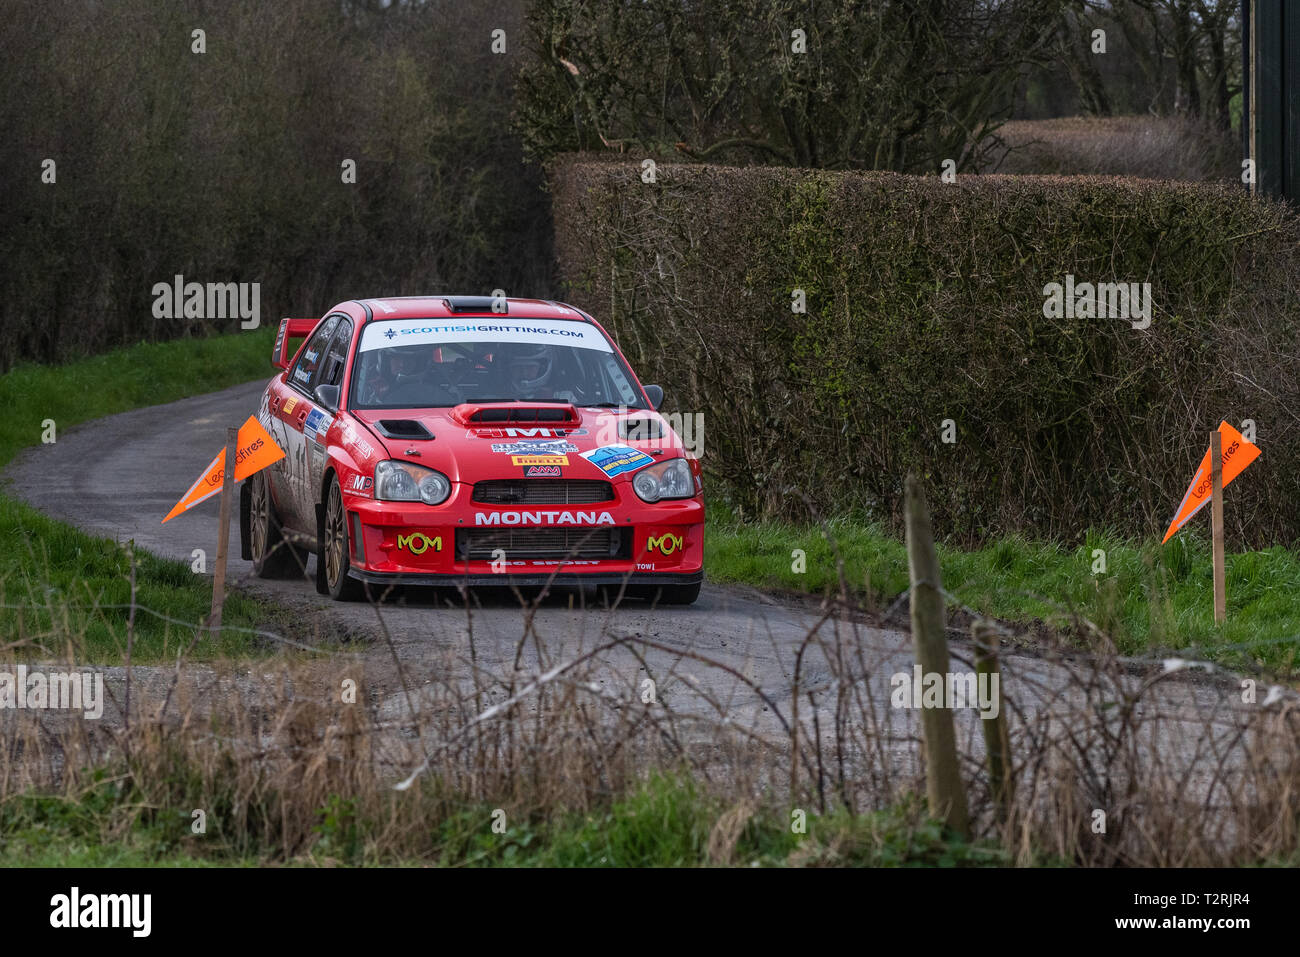 Gordon Morrison and his co-driver Callum Macpherson in their Subaru Impreza  in New Lane on the Staynall stage of Legend Fires North West Stages Rally - Stock Image